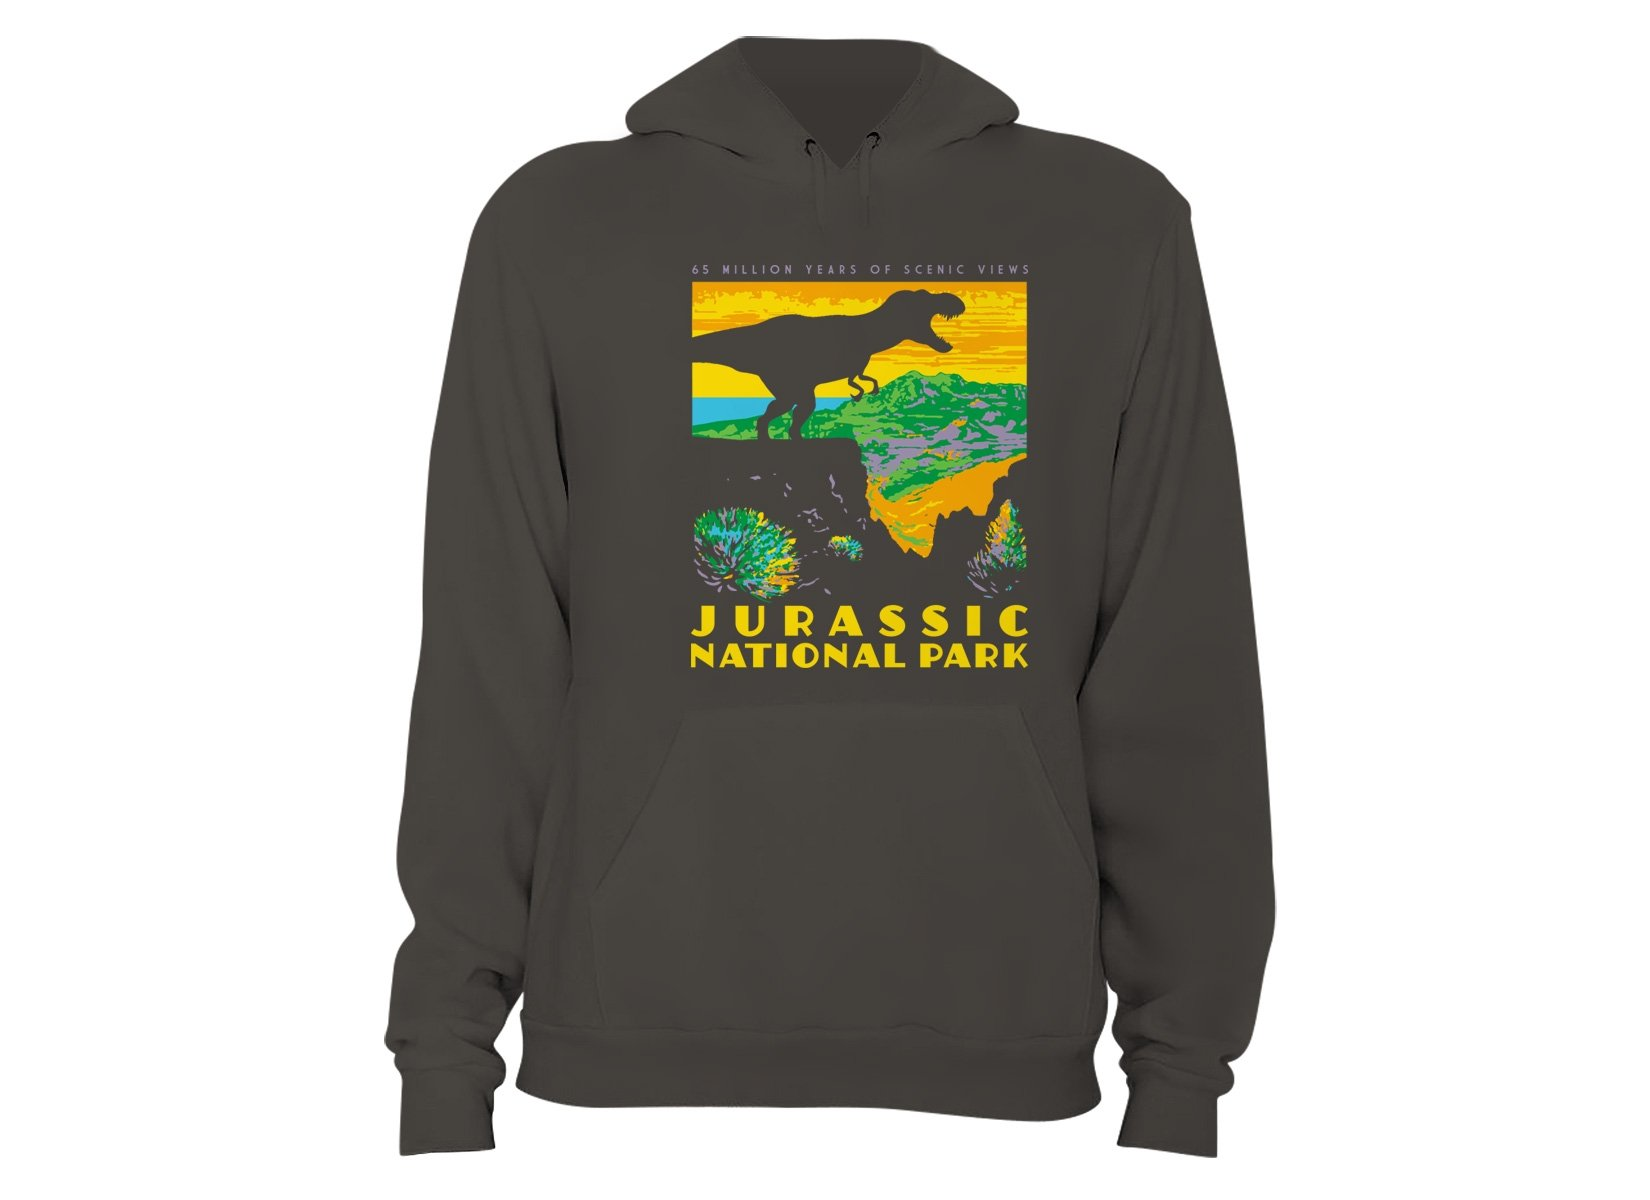 Jurassic National Park on Hoodie